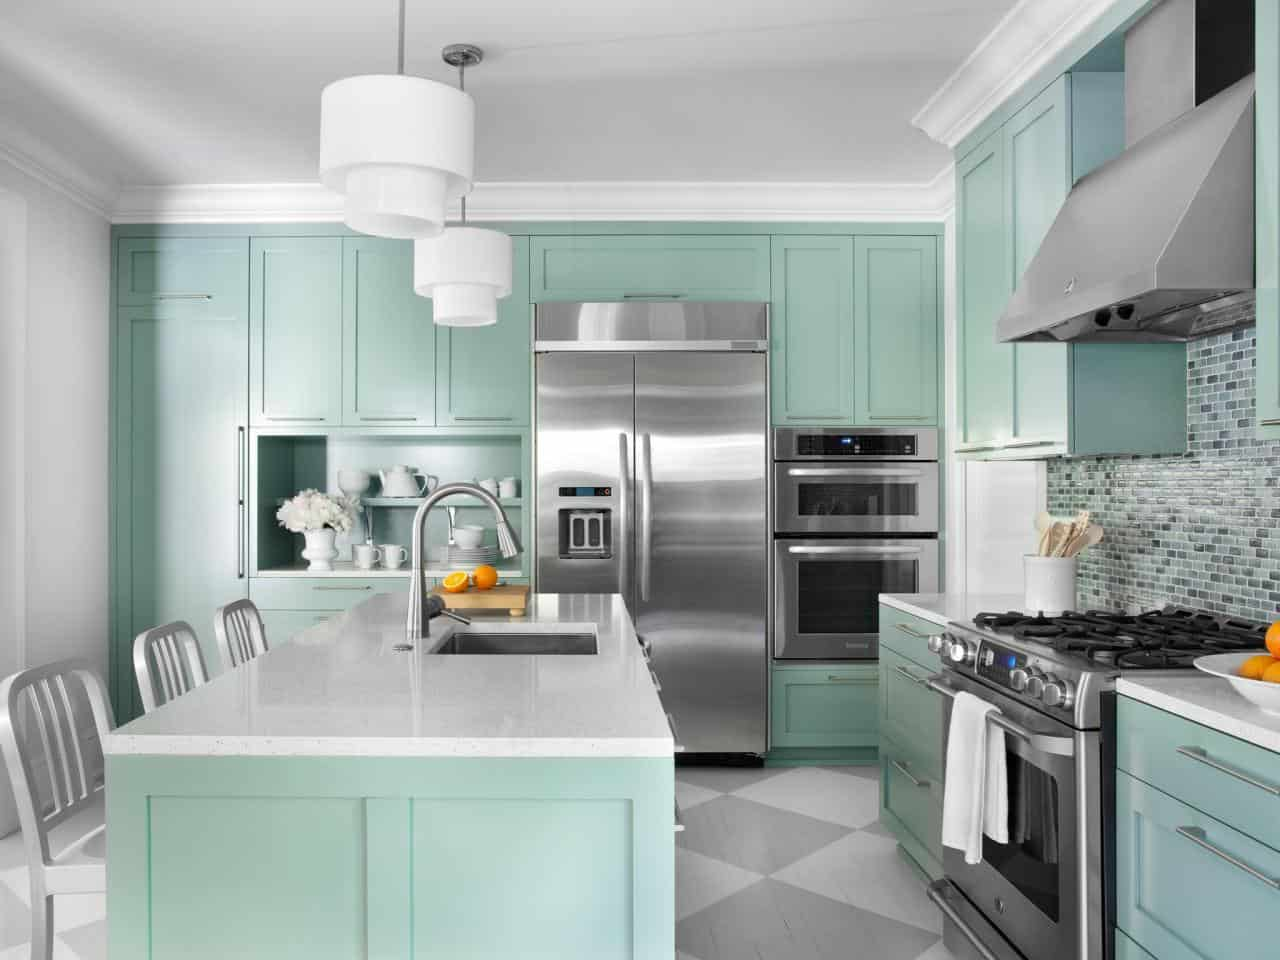 The kitchen may seem like it is the last place you may want to use such a bold shade in